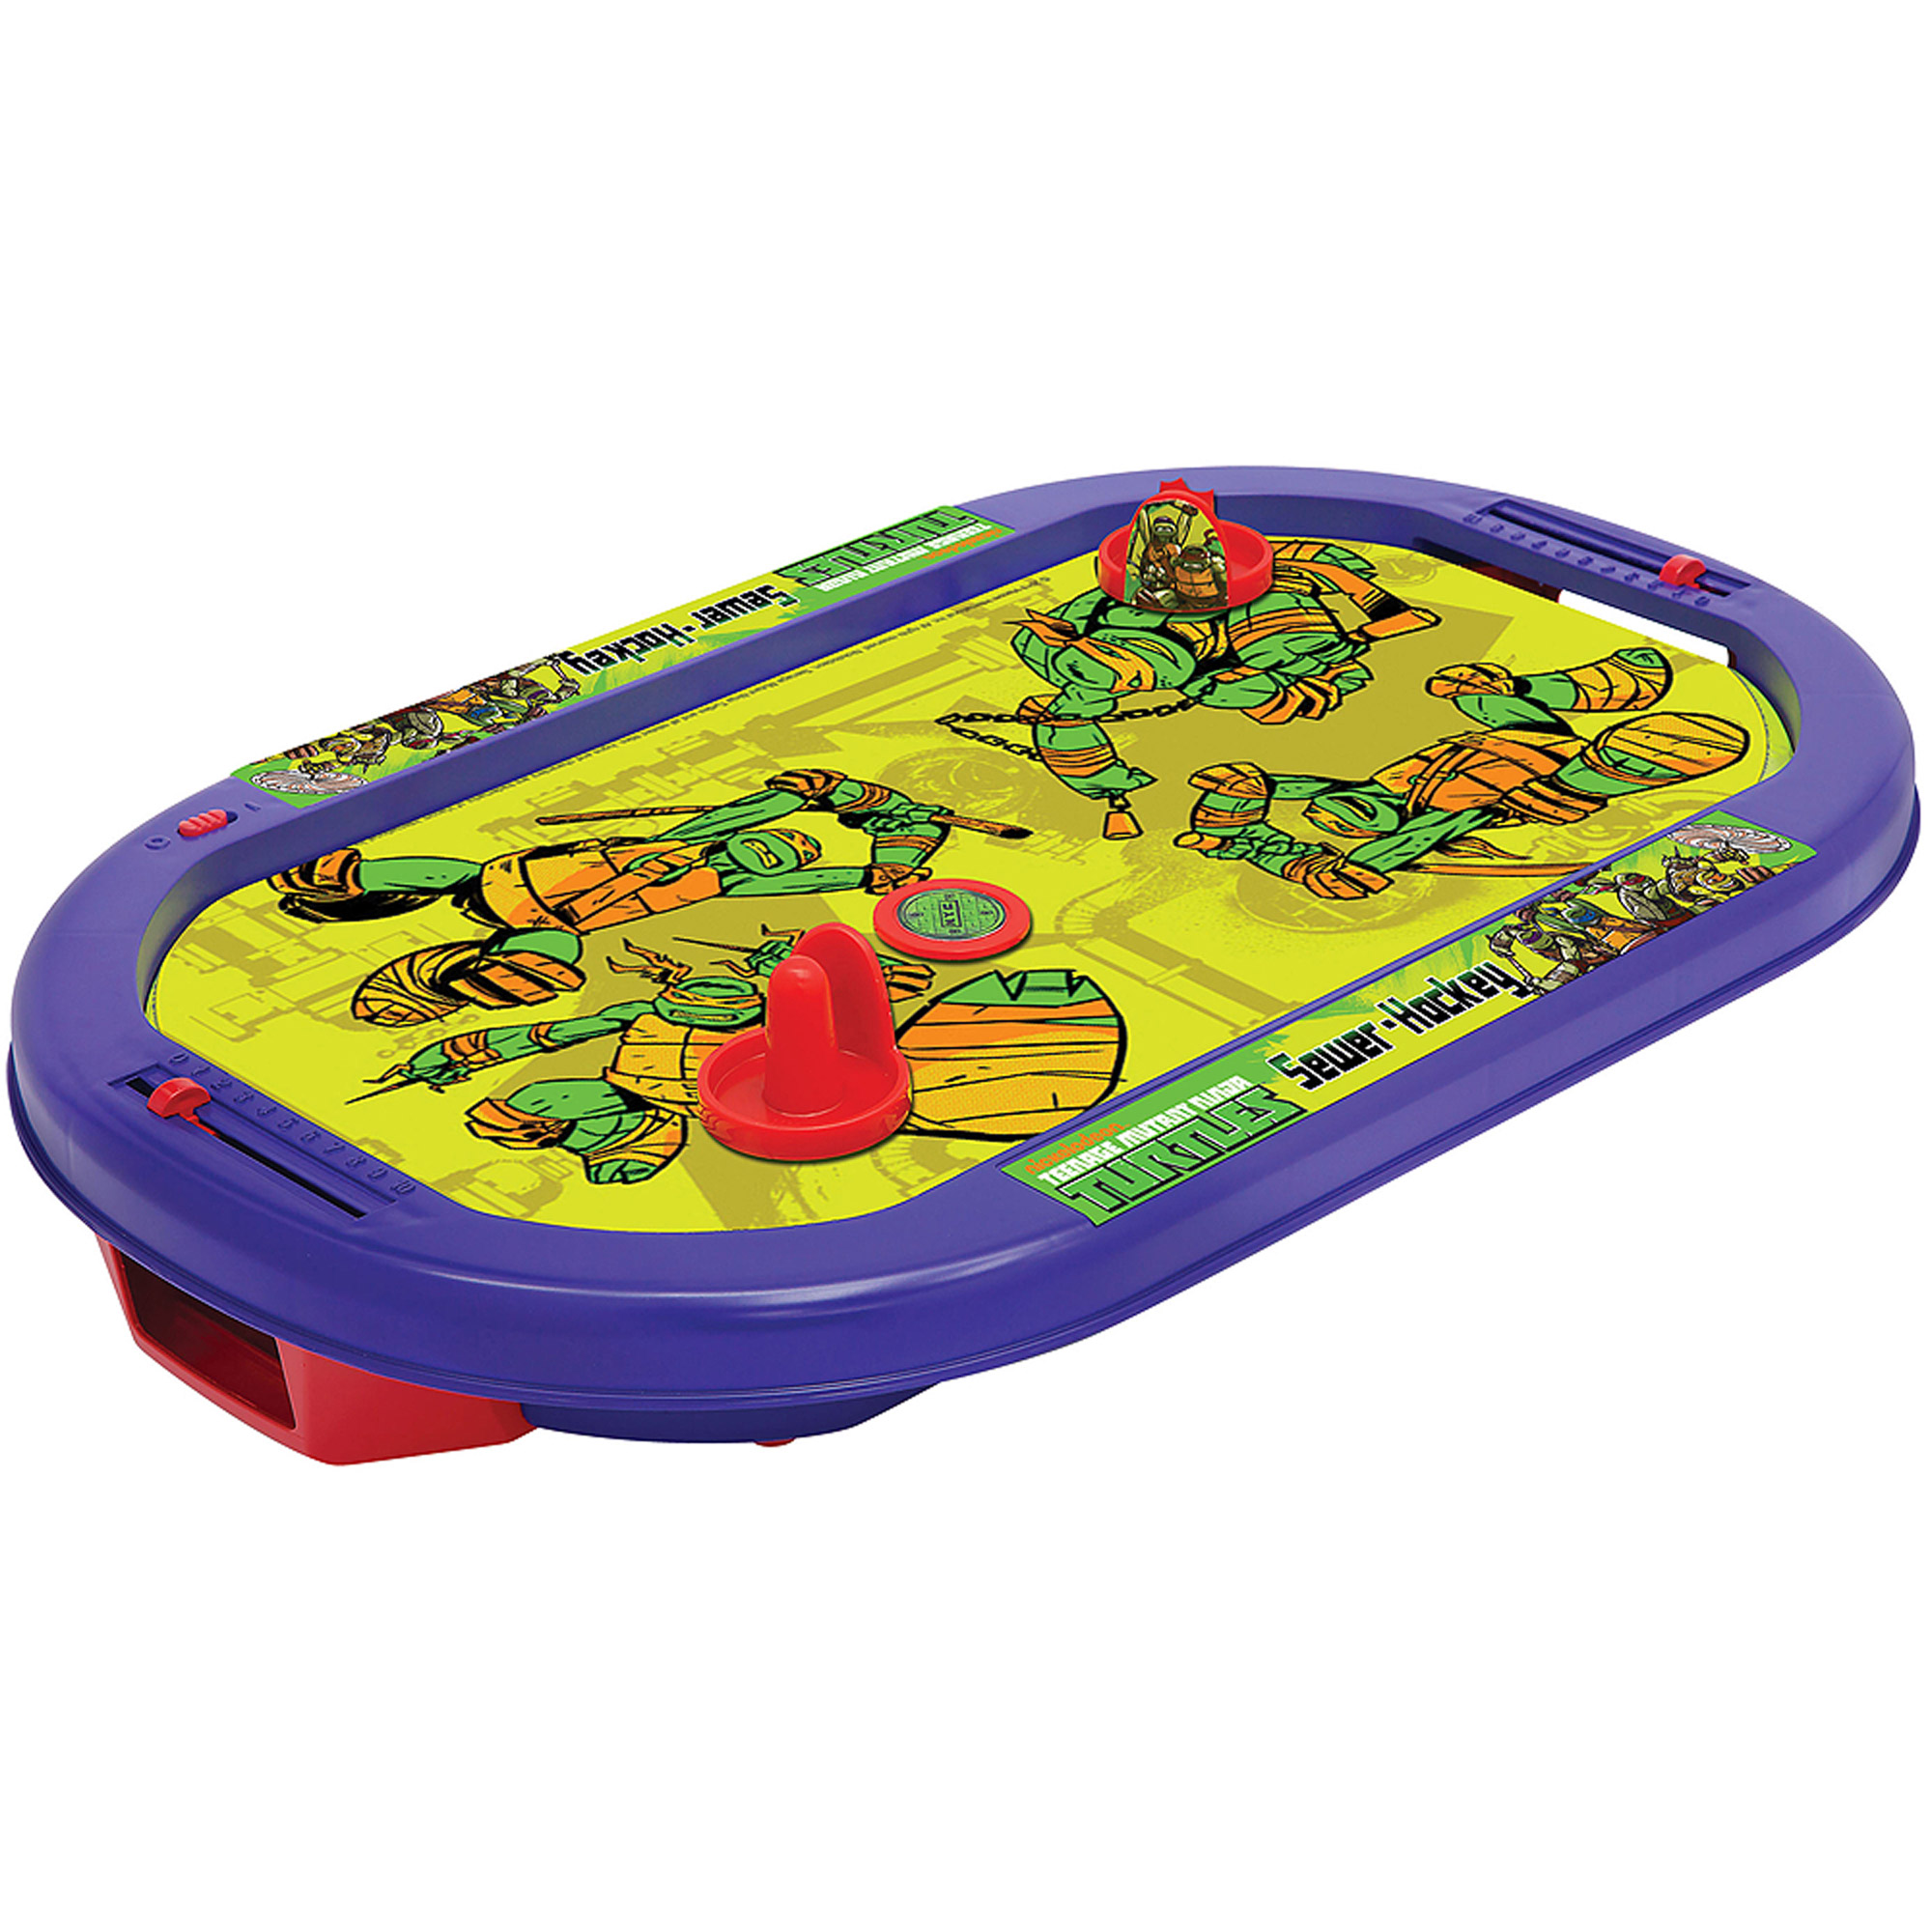 Teenage Mutant Ninja Turtles Air-Cade Sewer Hockey